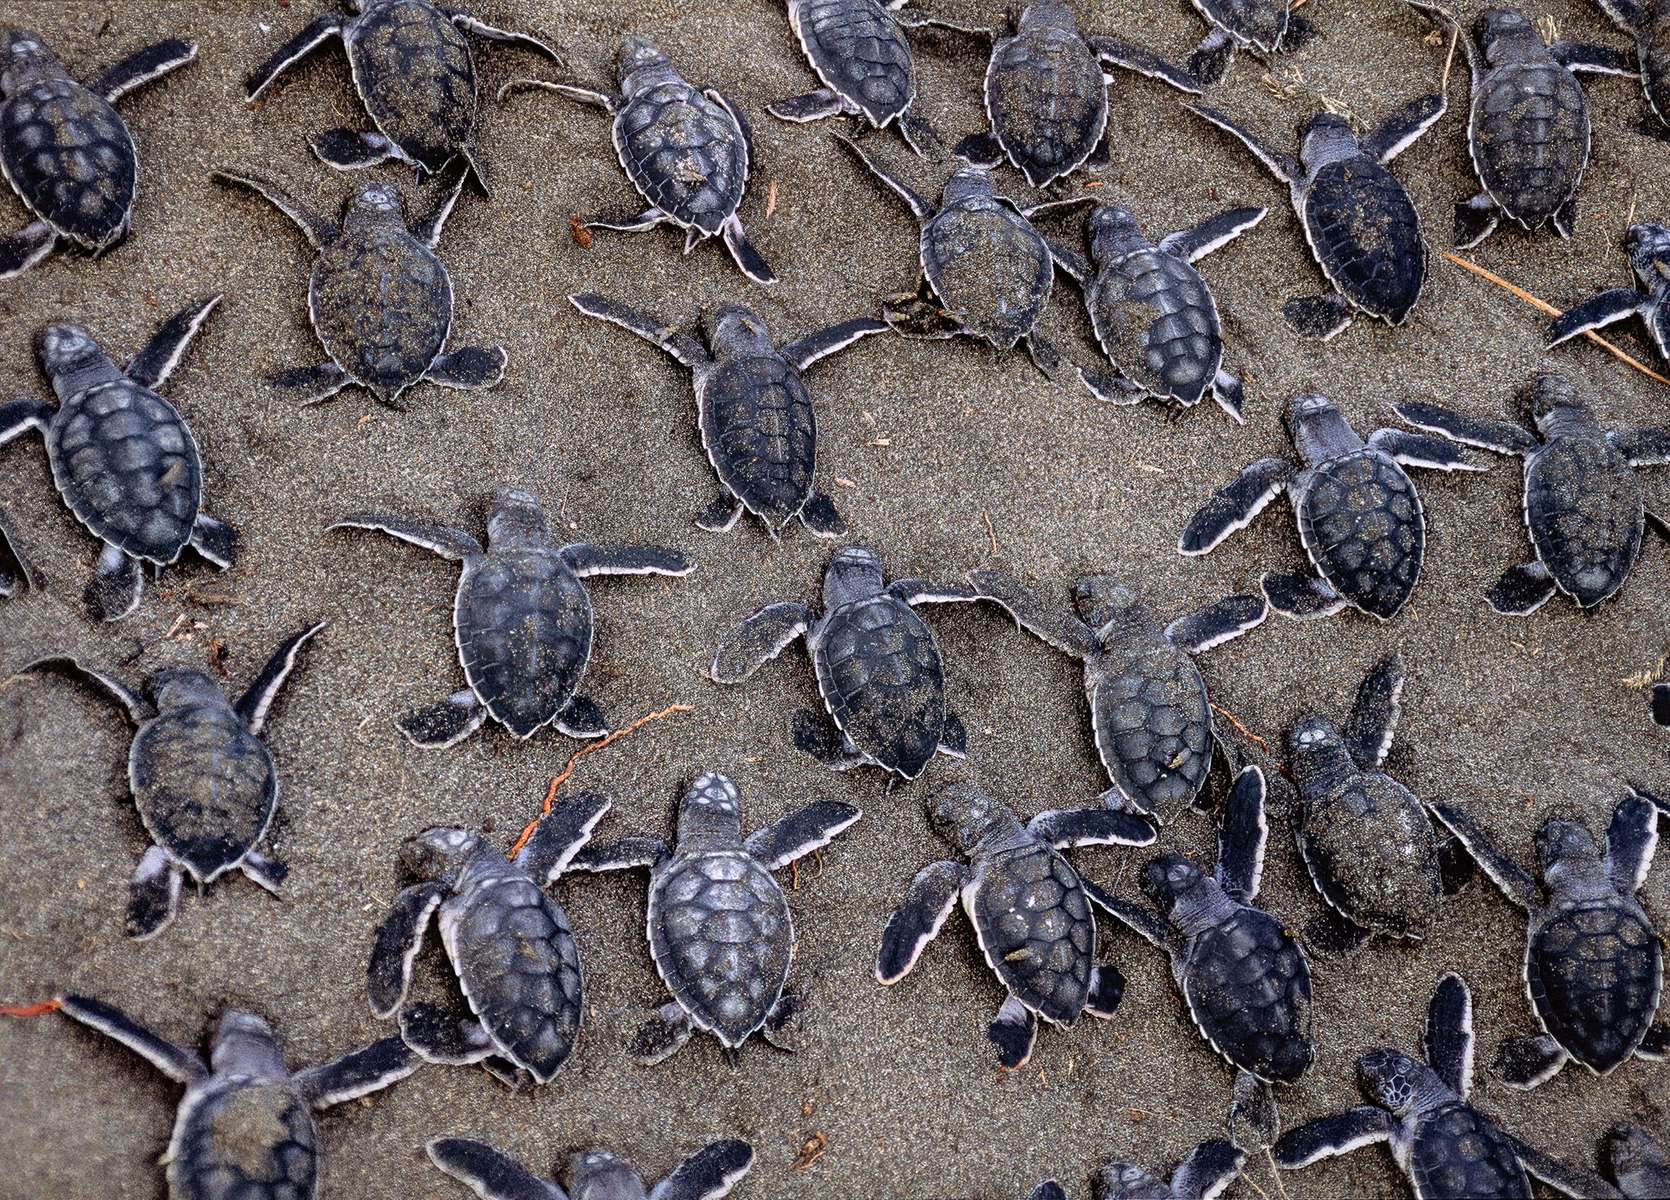 Wild dogs attacked this nest of green sea turtles. Locals dug up the survivors and protected them until they were able to scramble down to the crashing waves of the Caribbean Sea. Tortugero, Costa Rica